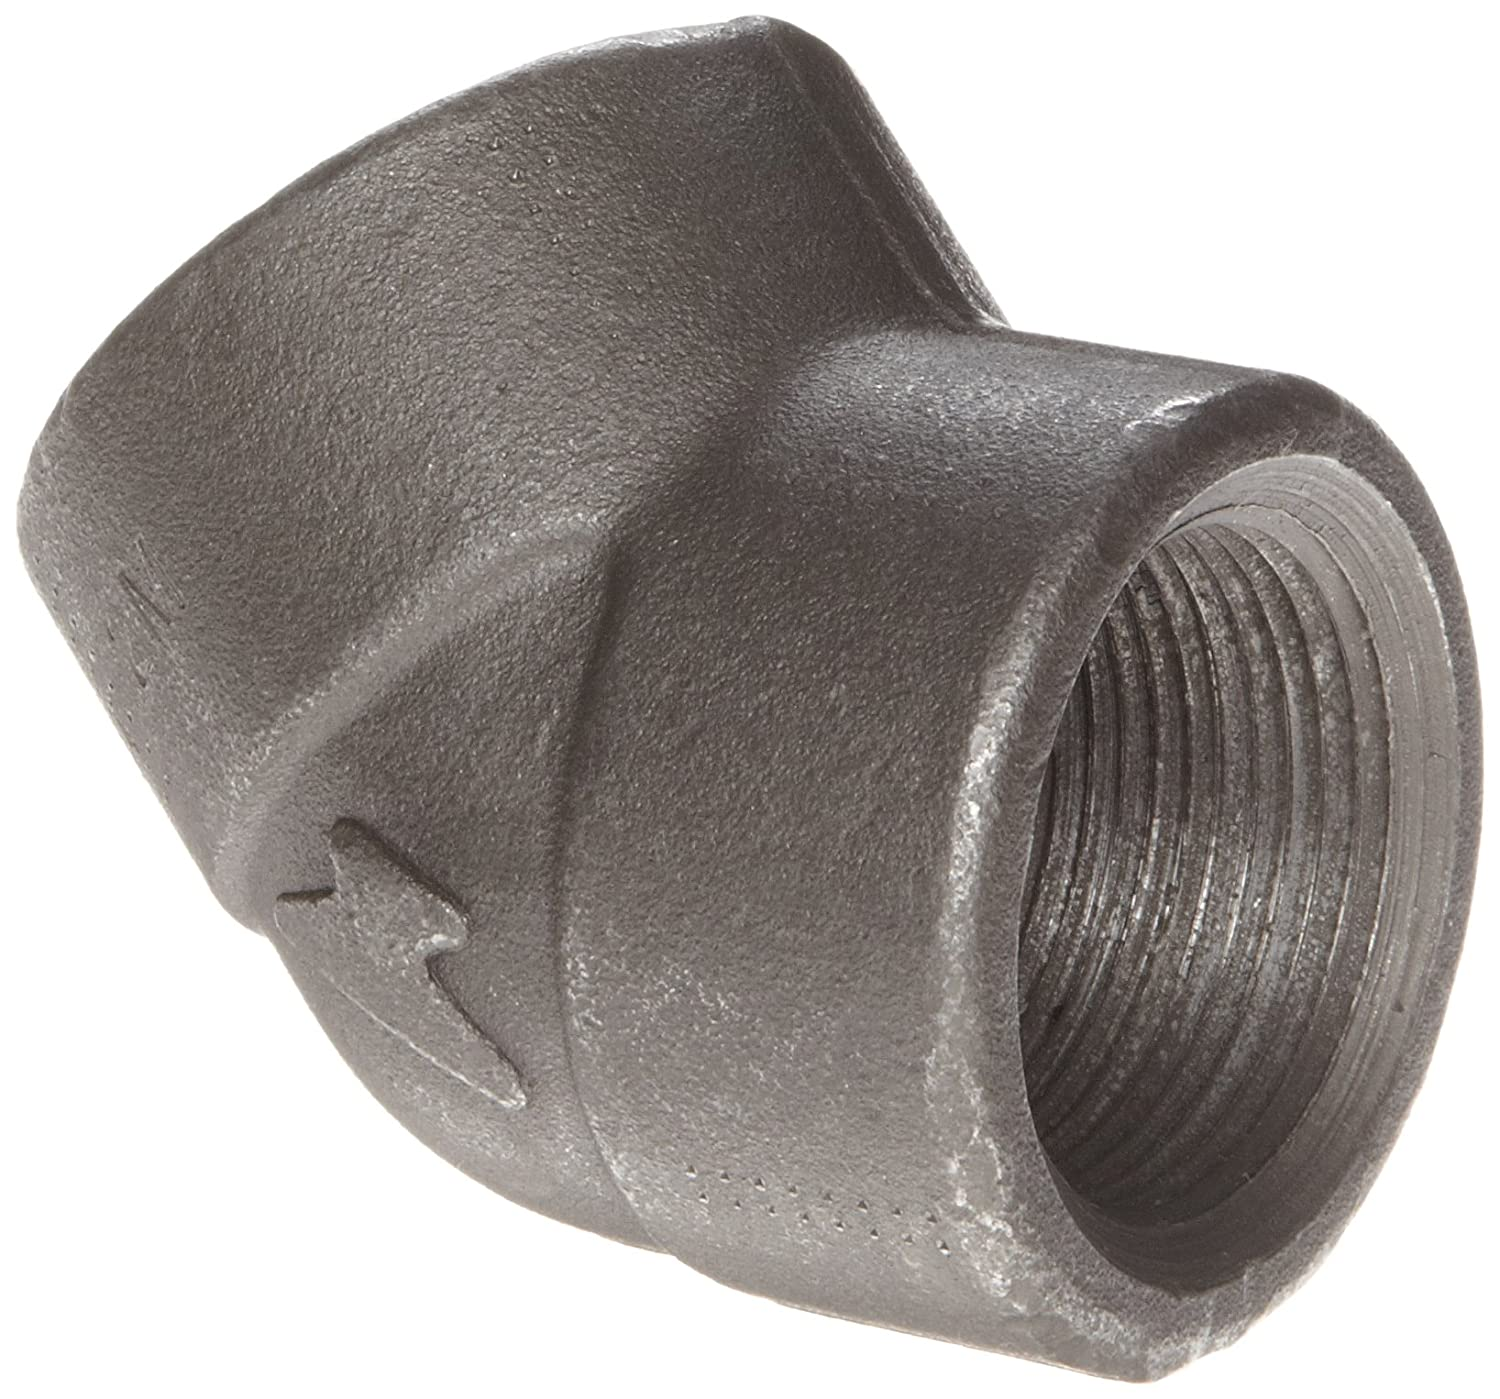 Cast Aluminum Connector End Inc 3 3//4 30 RV3 All Metal Suction Strainer 3 GPM Flow Ezy Filters 3 PSI Relief Valve 30 Mesh Size 3//4 Female NPT